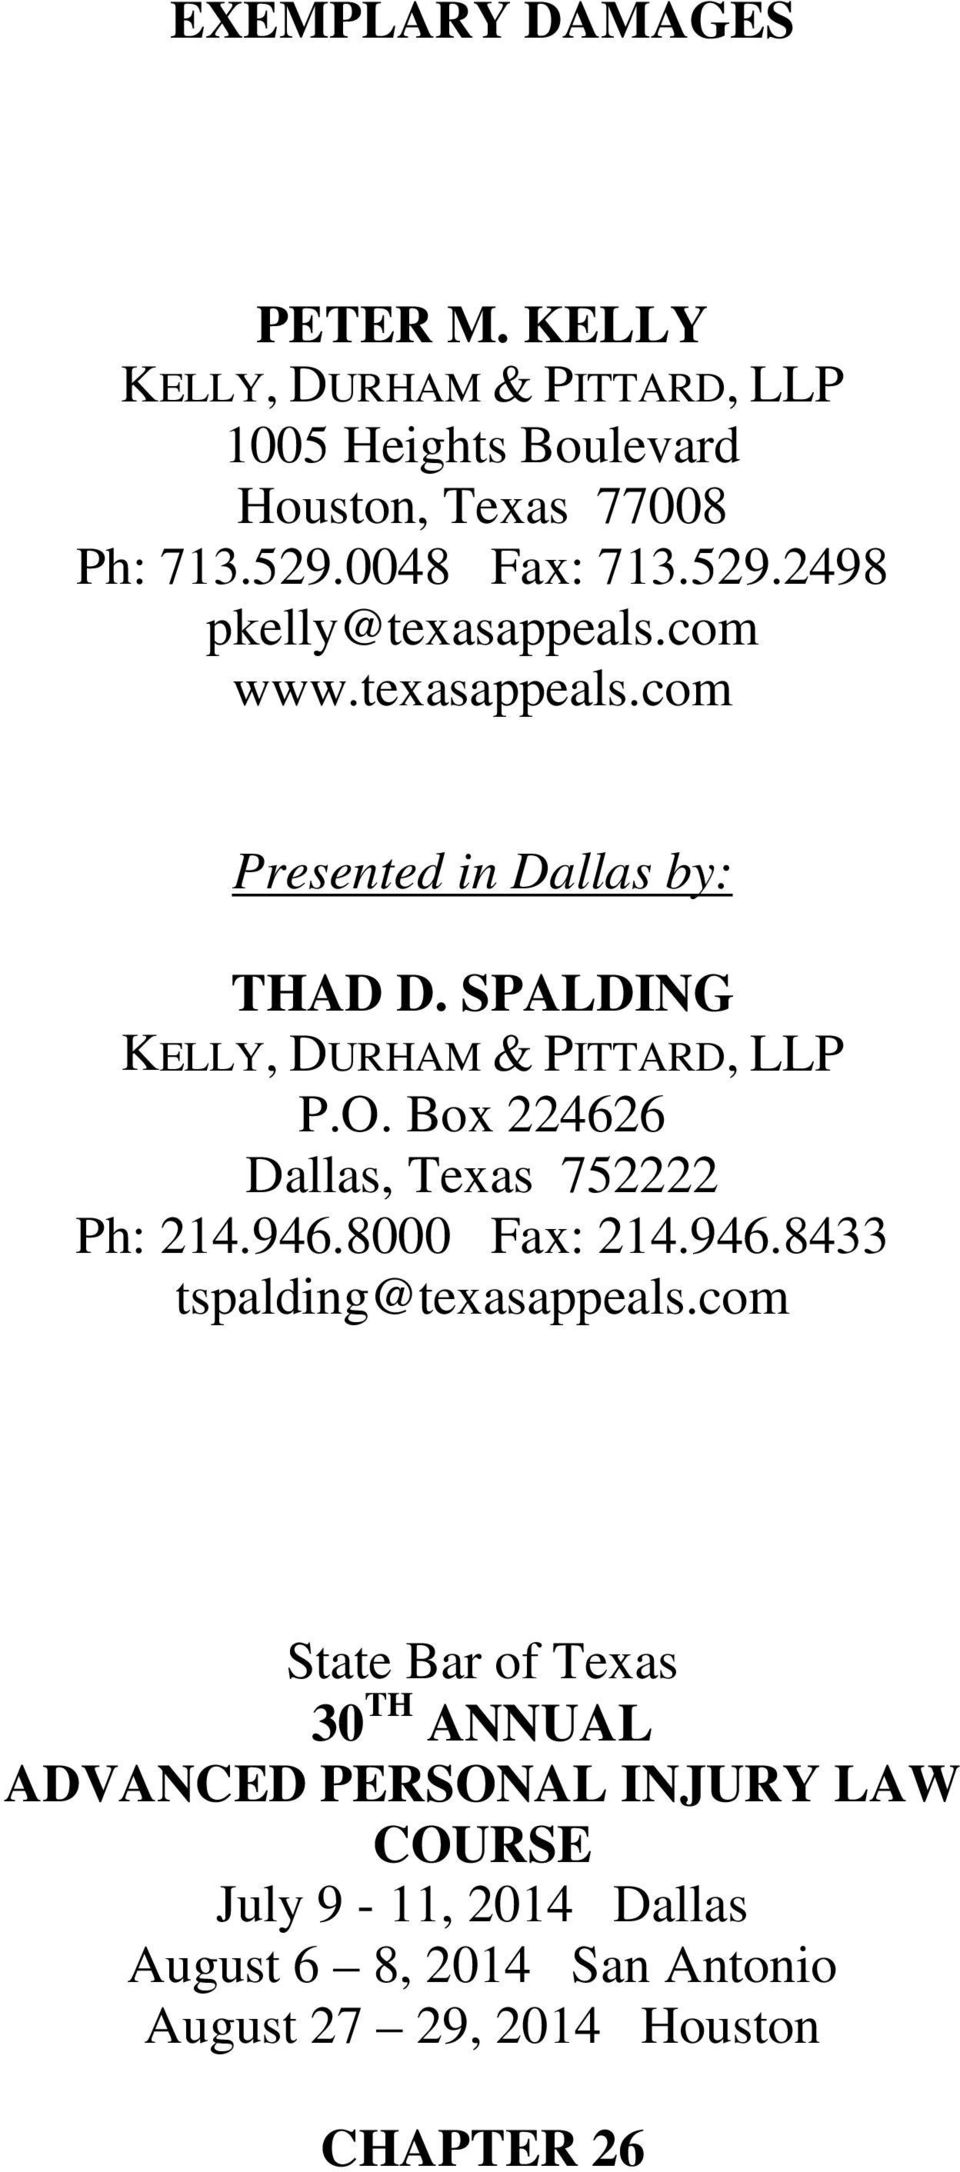 SPALDING KELLY, DURHAM & PITTARD, LLP P.O. Box 224626 Dallas, Texas 752222 Ph: 214.946.8000 Fax: 214.946.8433 tspalding@texasappeals.